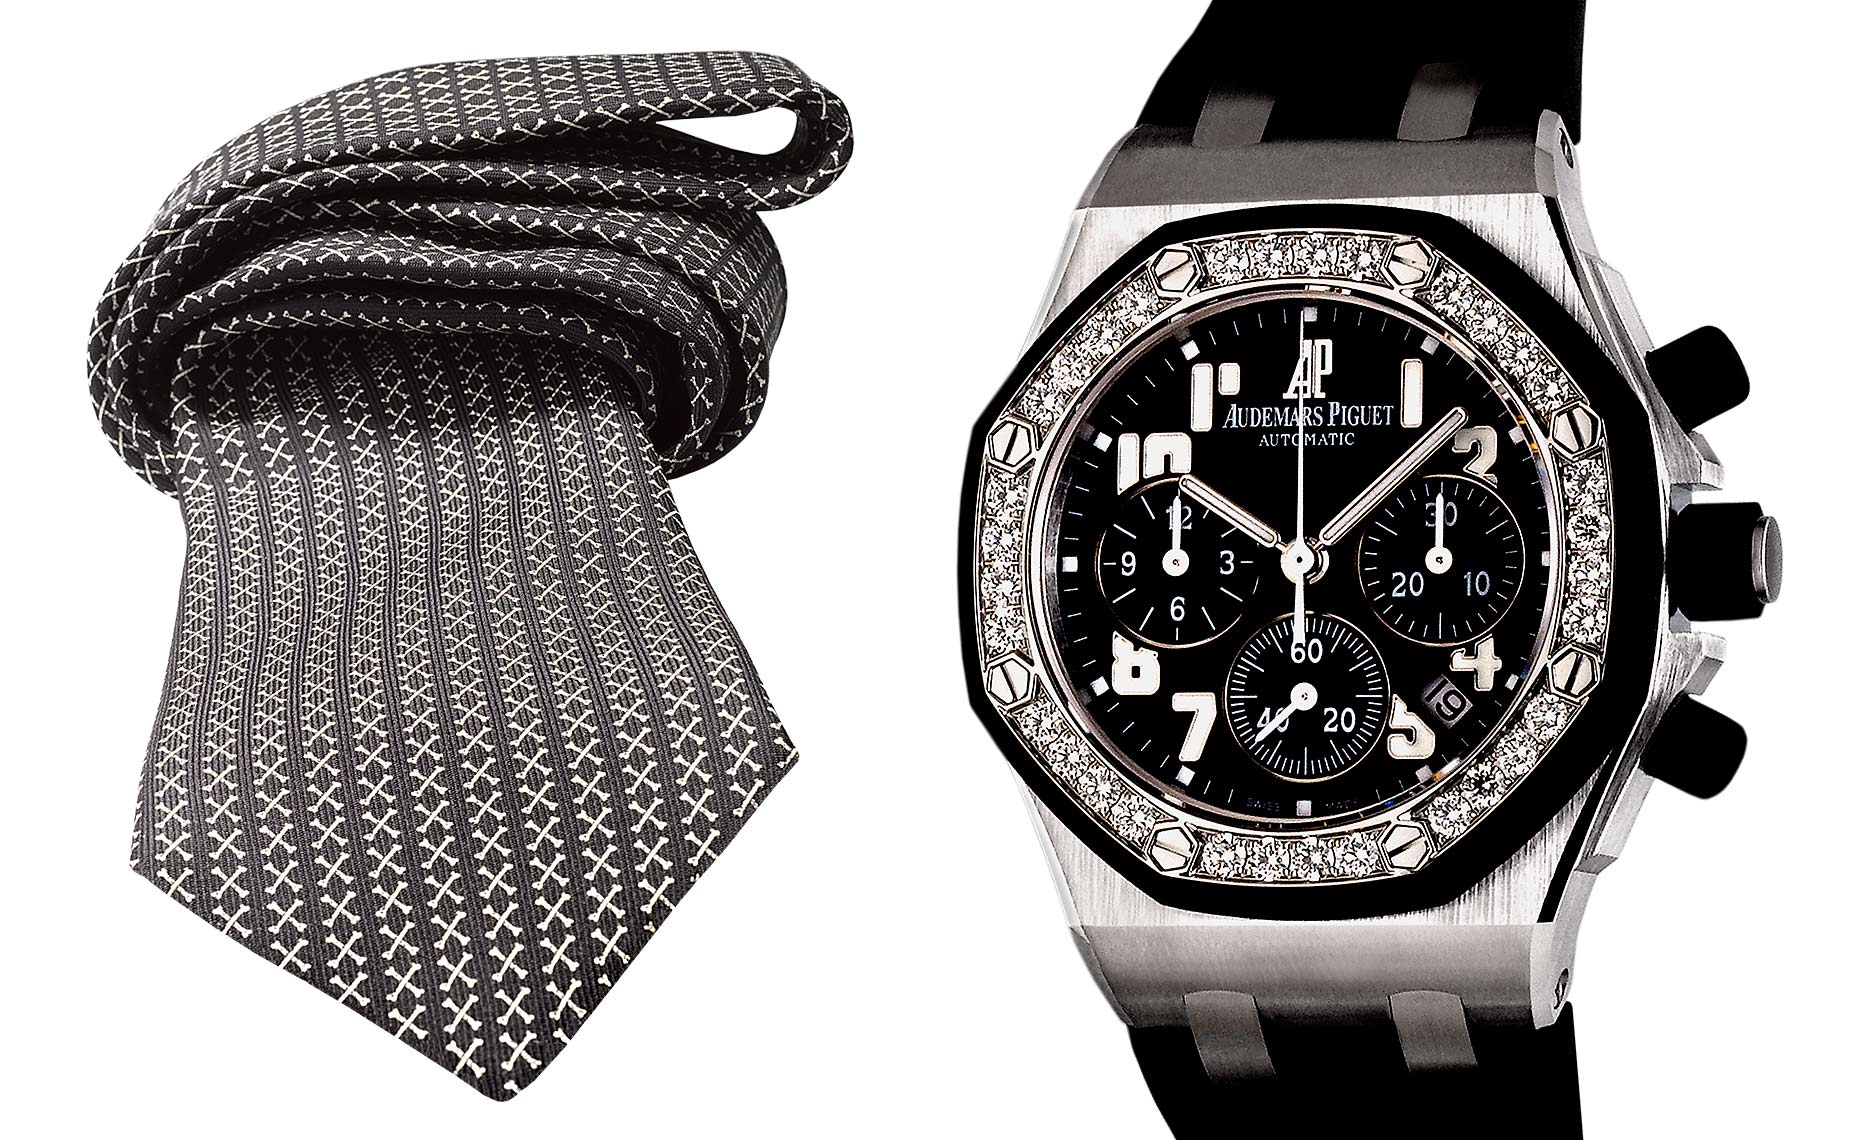 Barker Black crossbone necktie  and Audemars Piguet wristwatch